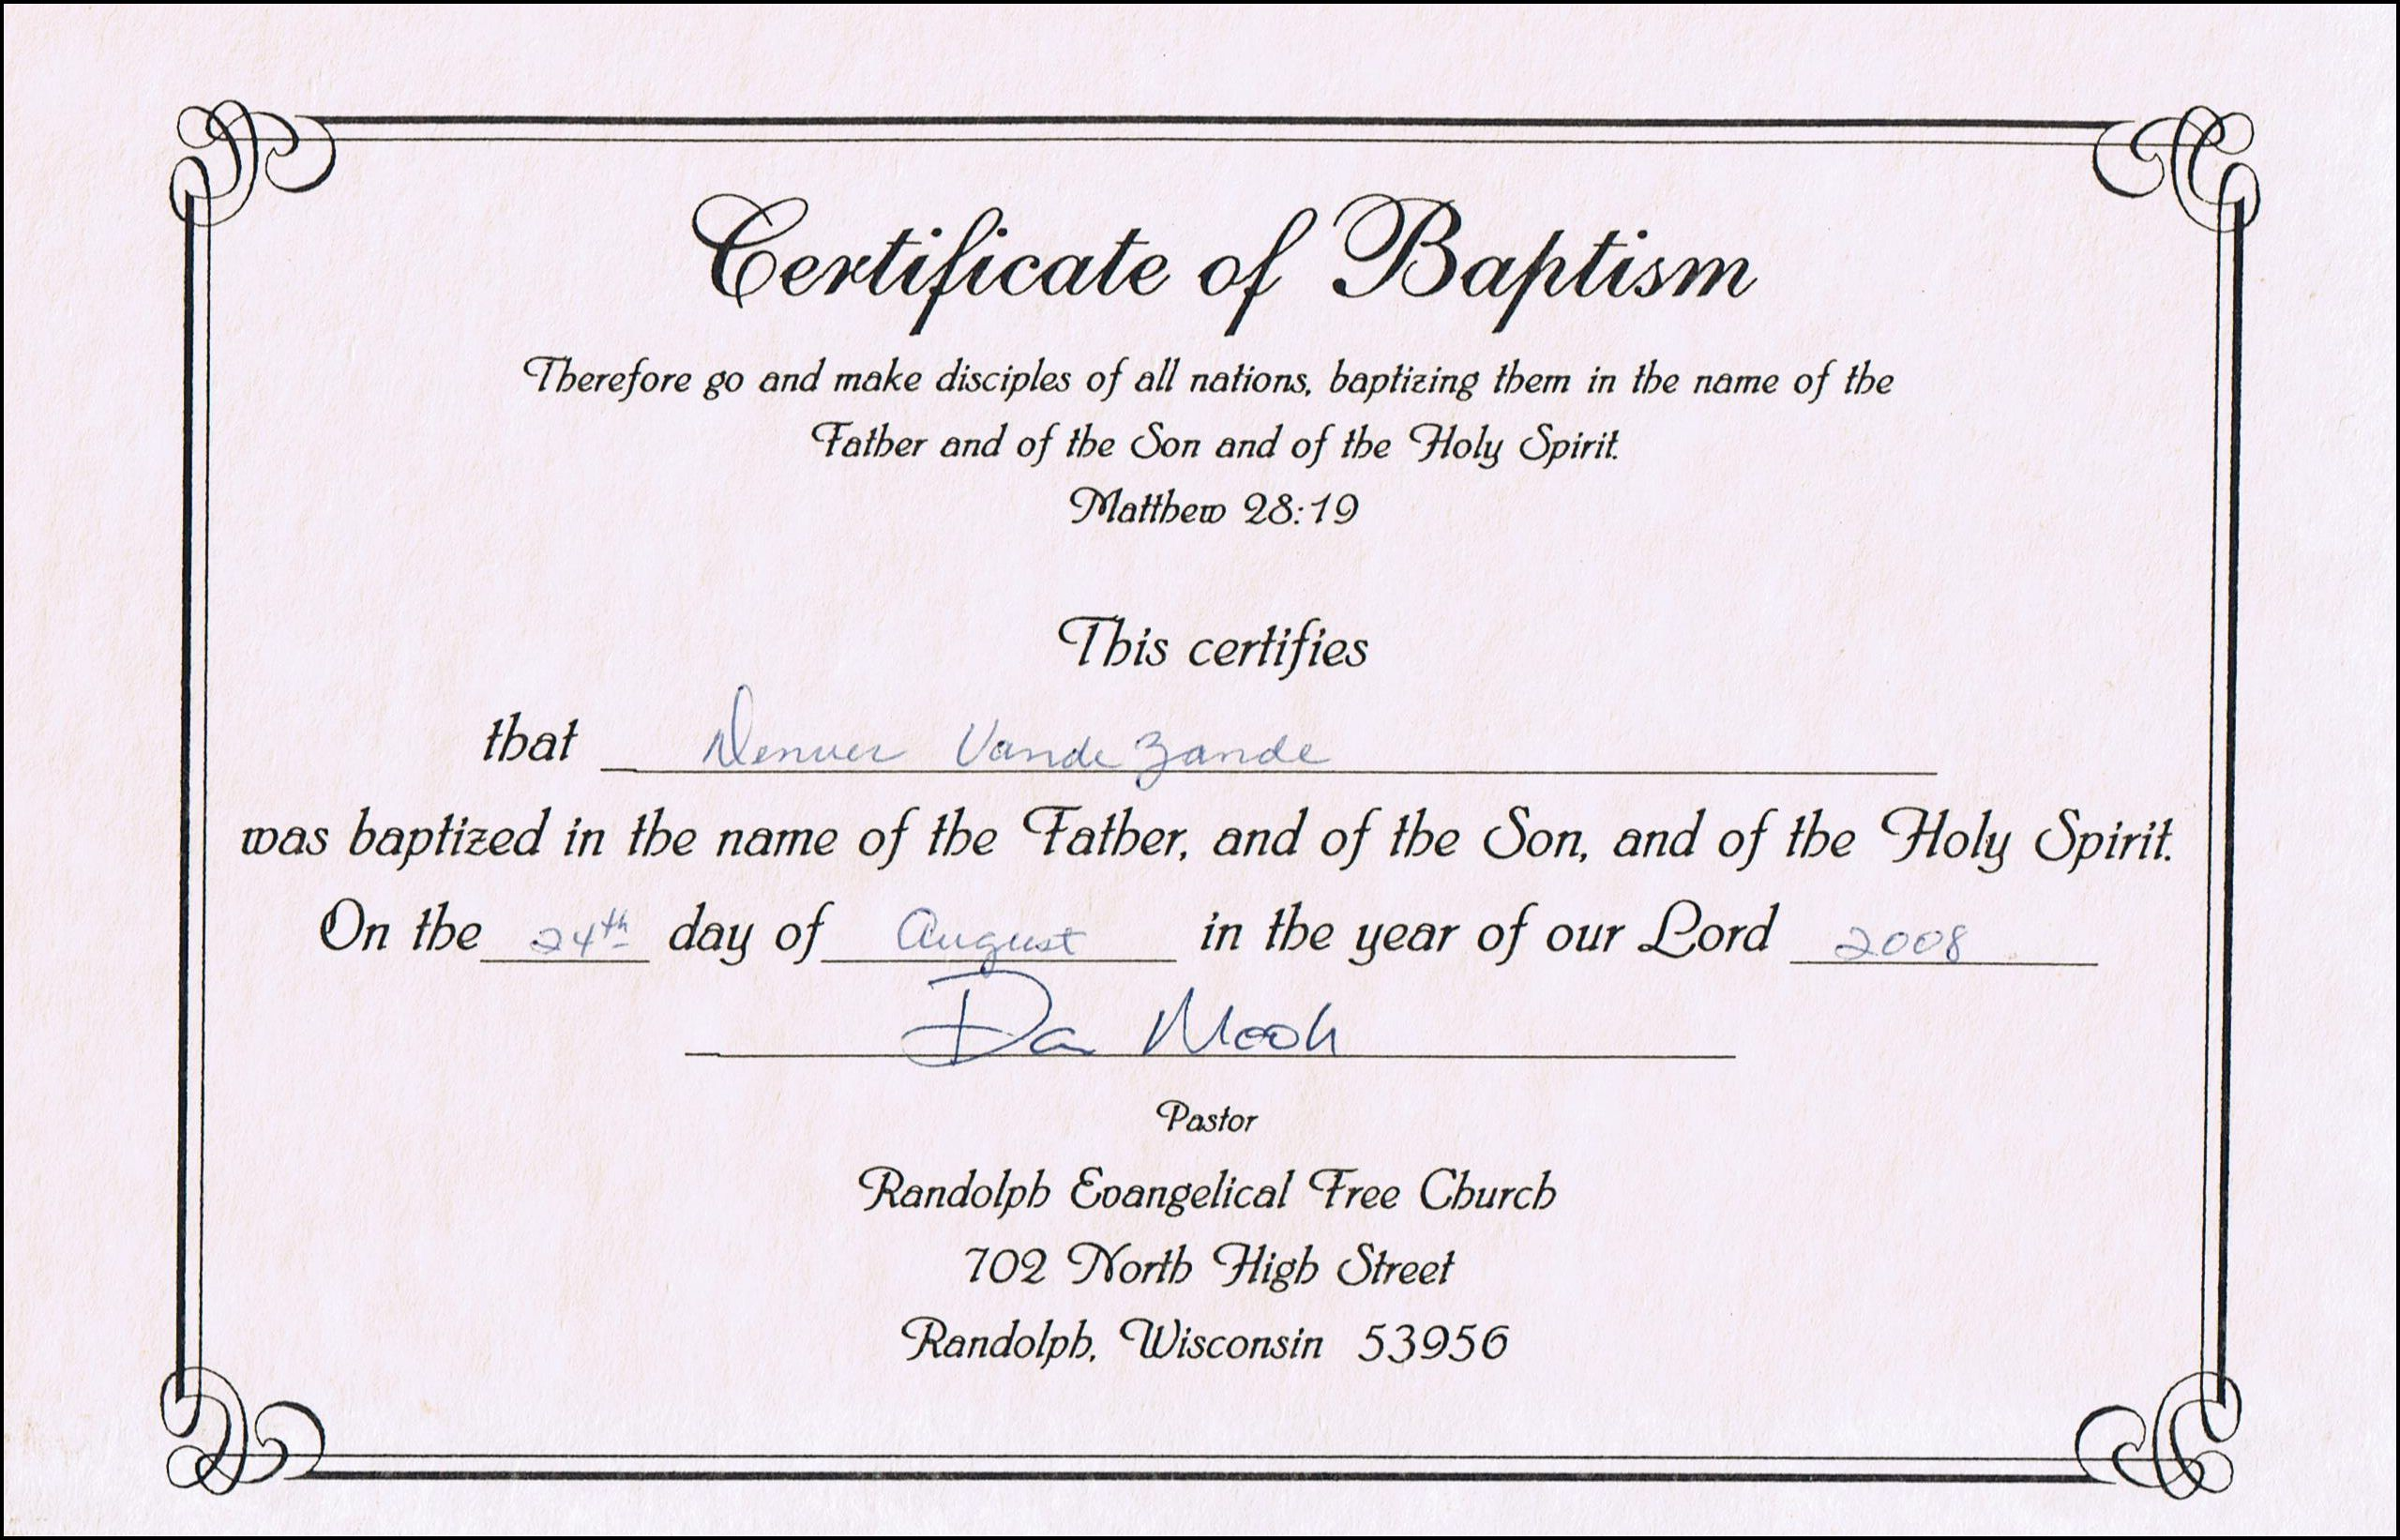 Baptism certificate templates for word aspects of beauty is the one stop beauty shop for all for Catholic baptism certificate template